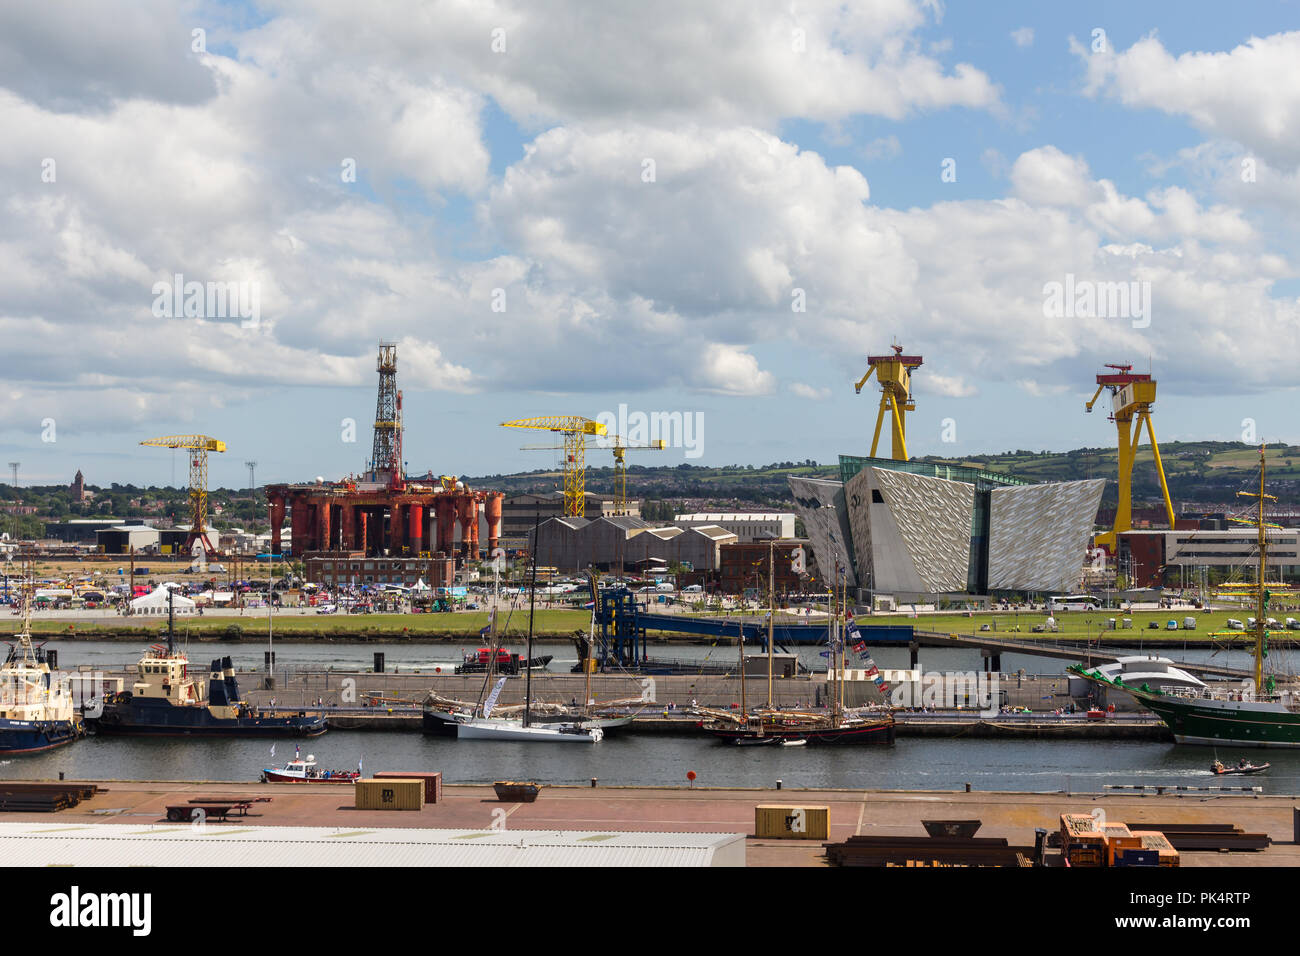 High level view of Belfast docks with Harland & Wolff shipbuilders cranes, Samson & Goliath, in view behind the Titanic Building. Belfast, N.Ireland. - Stock Image